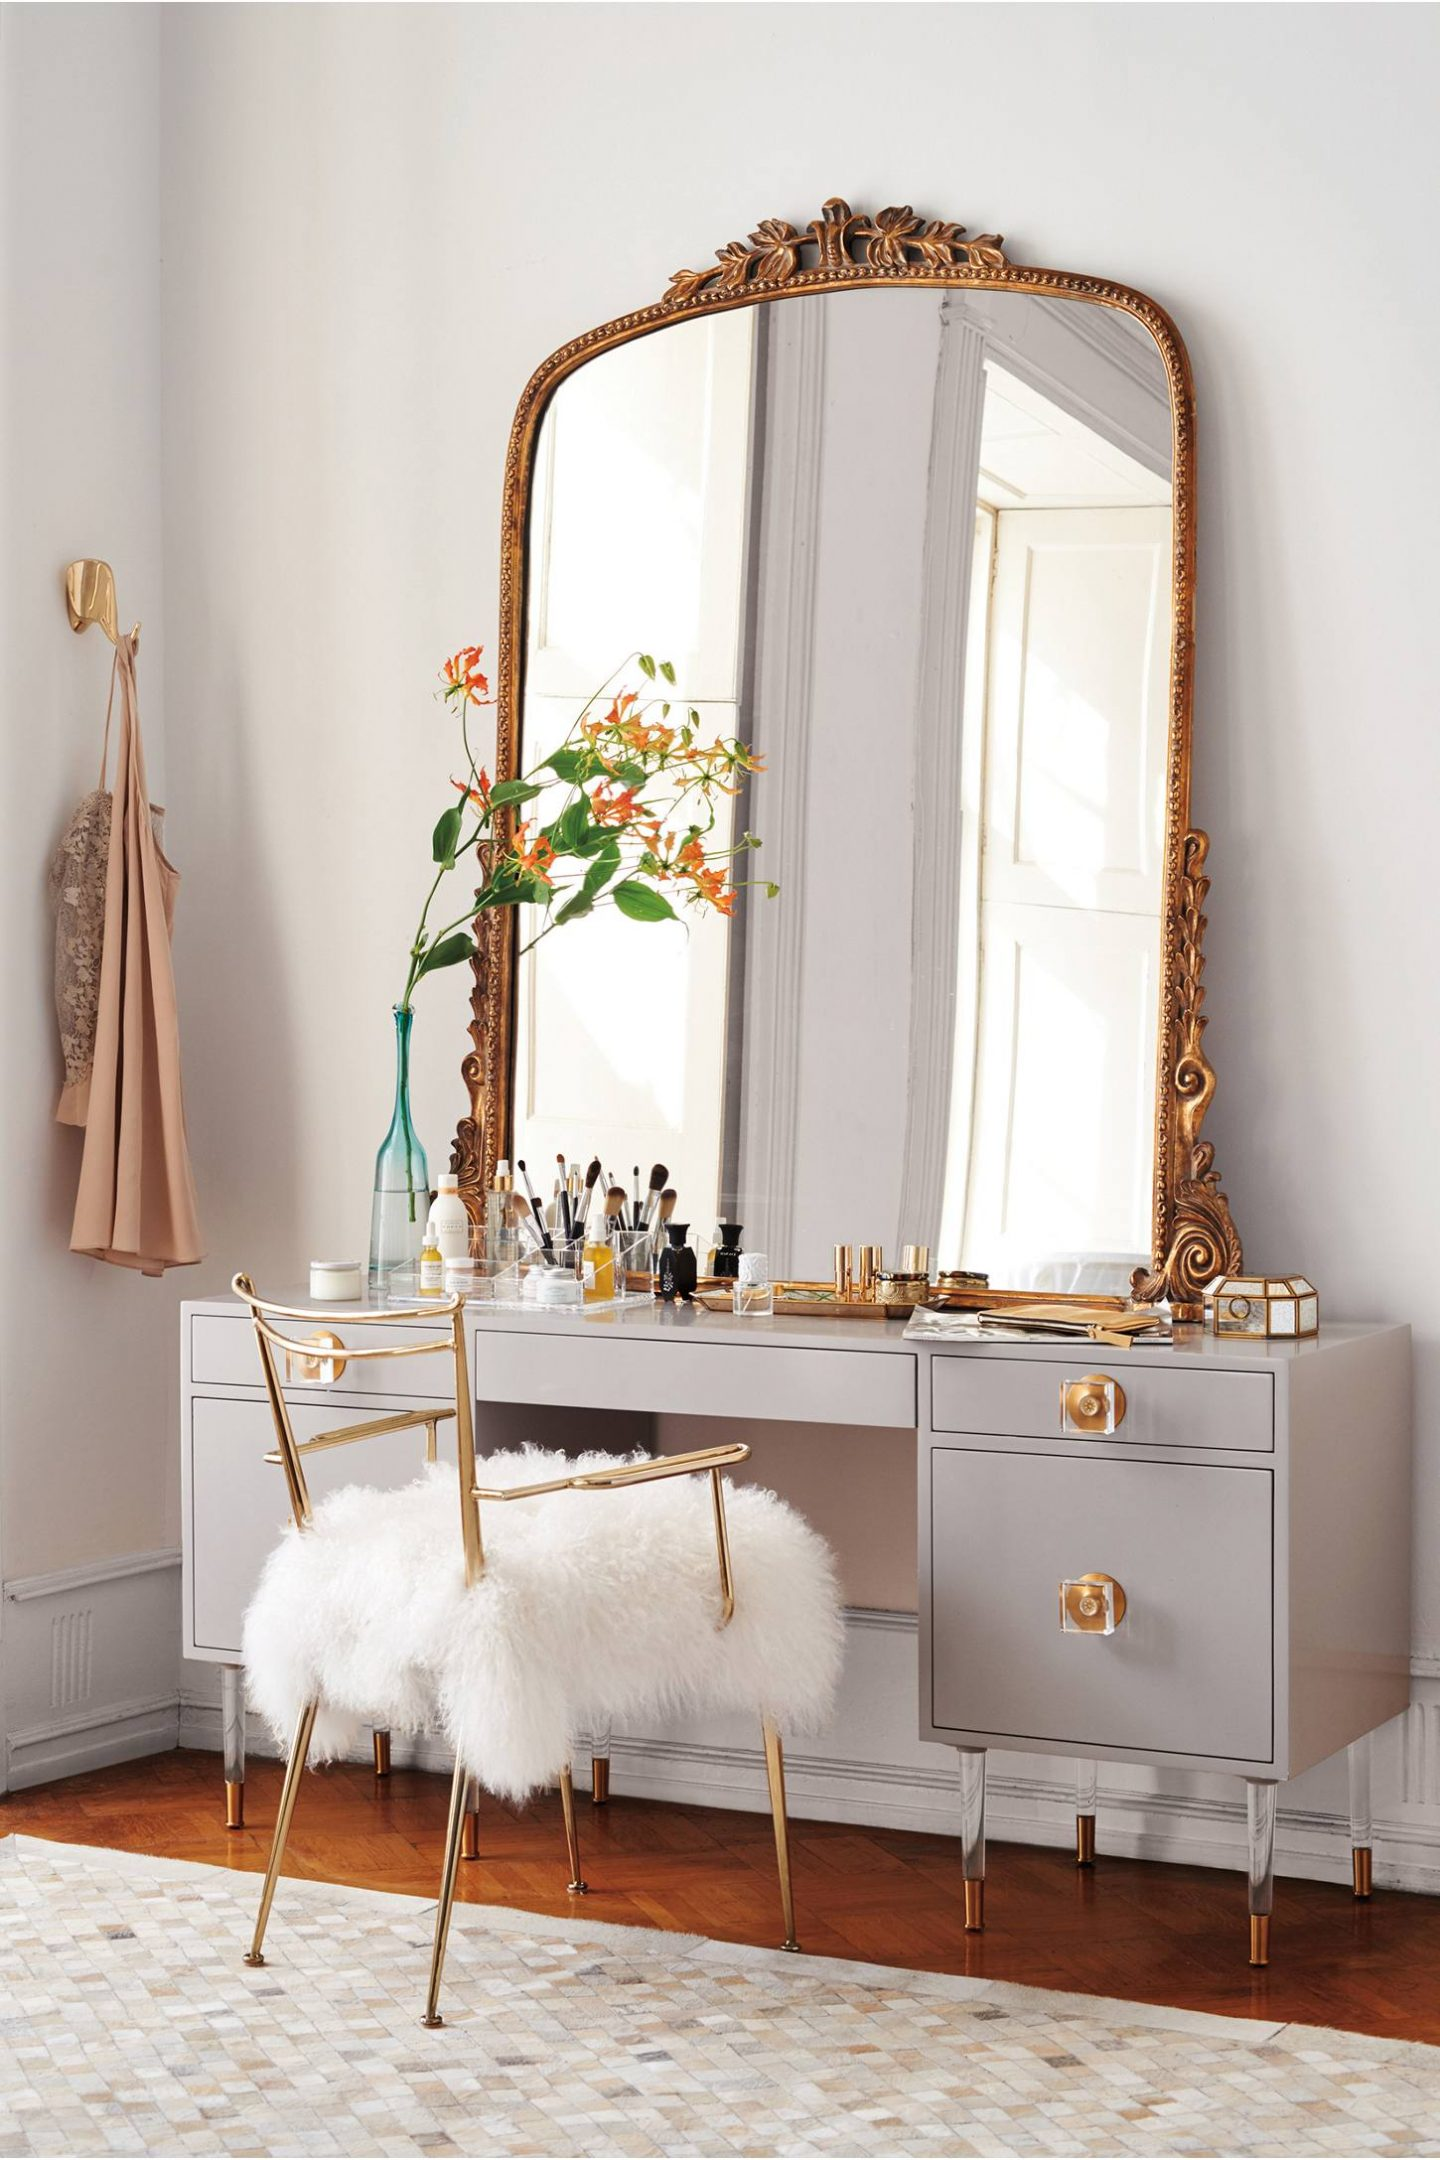 Feminine Furniture Home Decor My Favourites From Anthropologie A Side Of Vogue